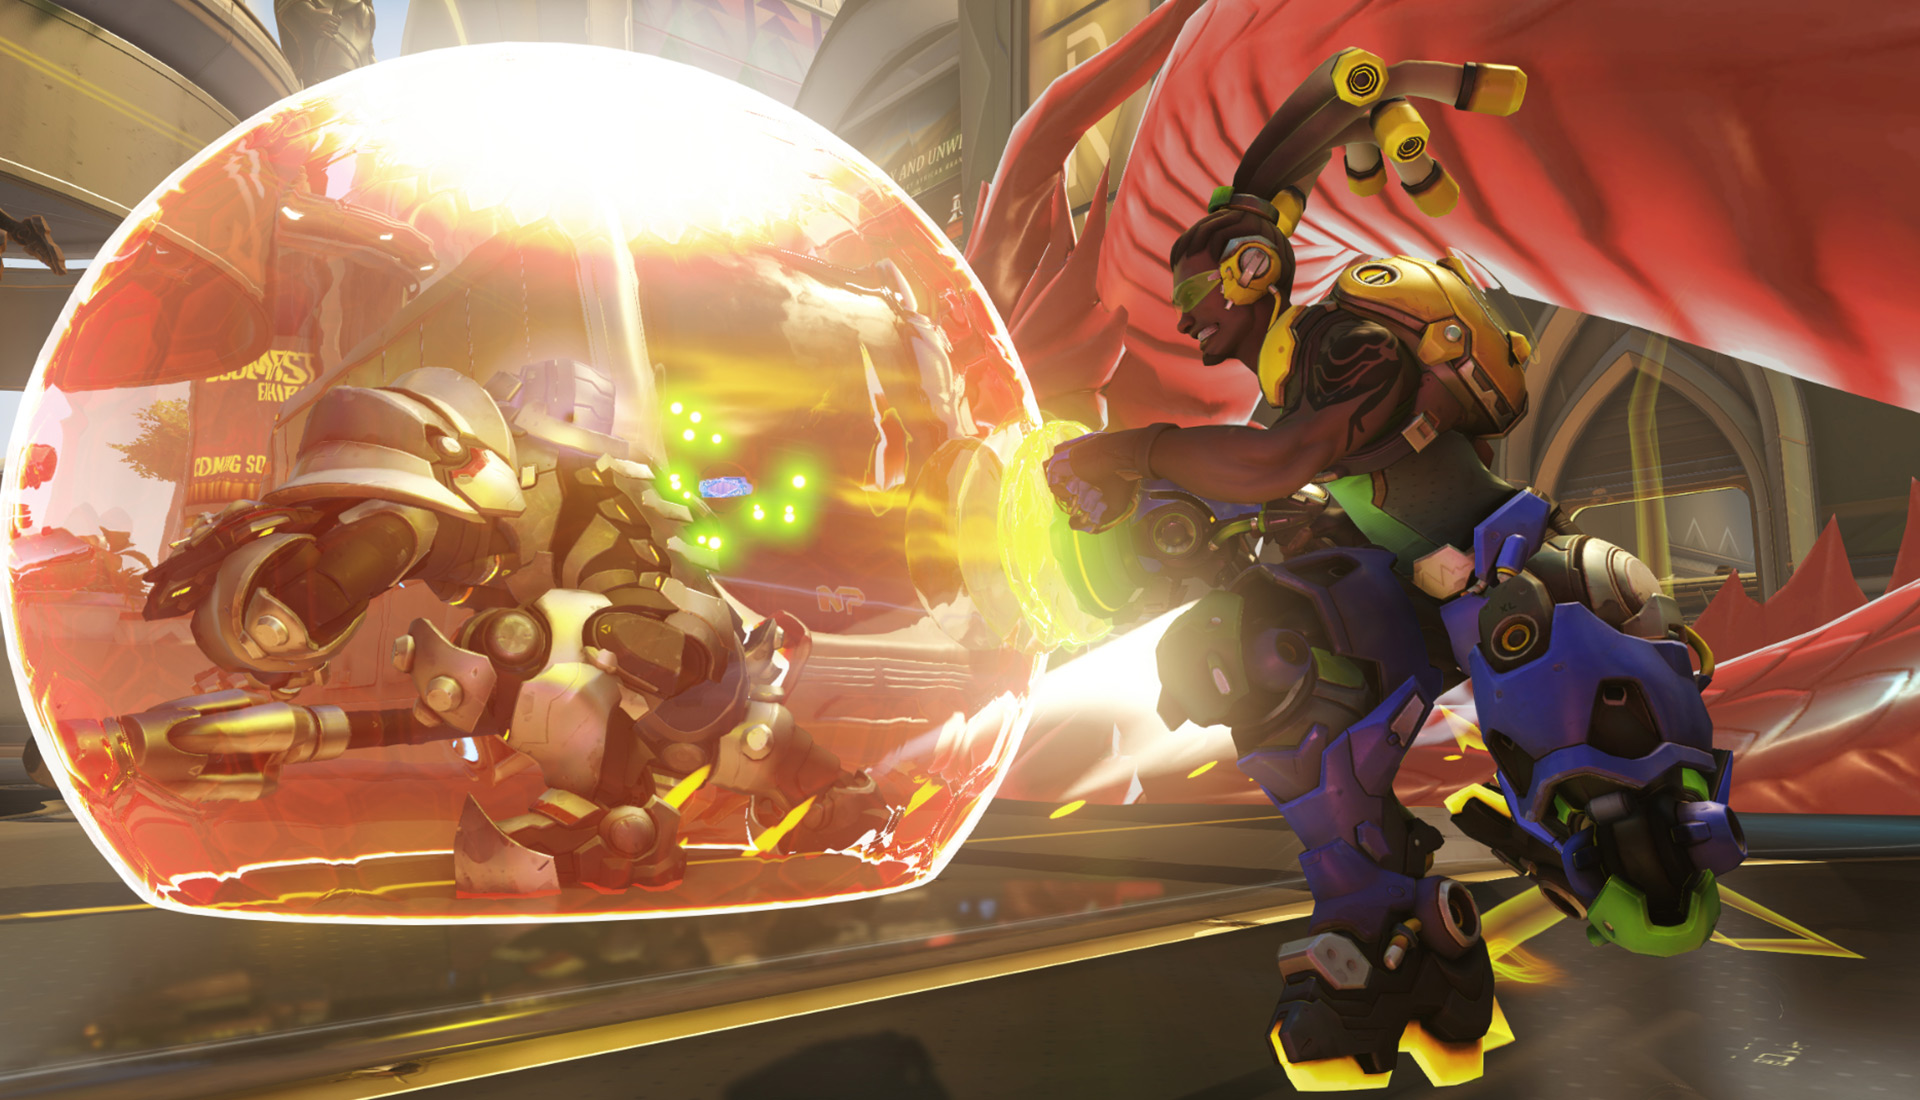 'Overwatch' already has 7 million people aiming at your face